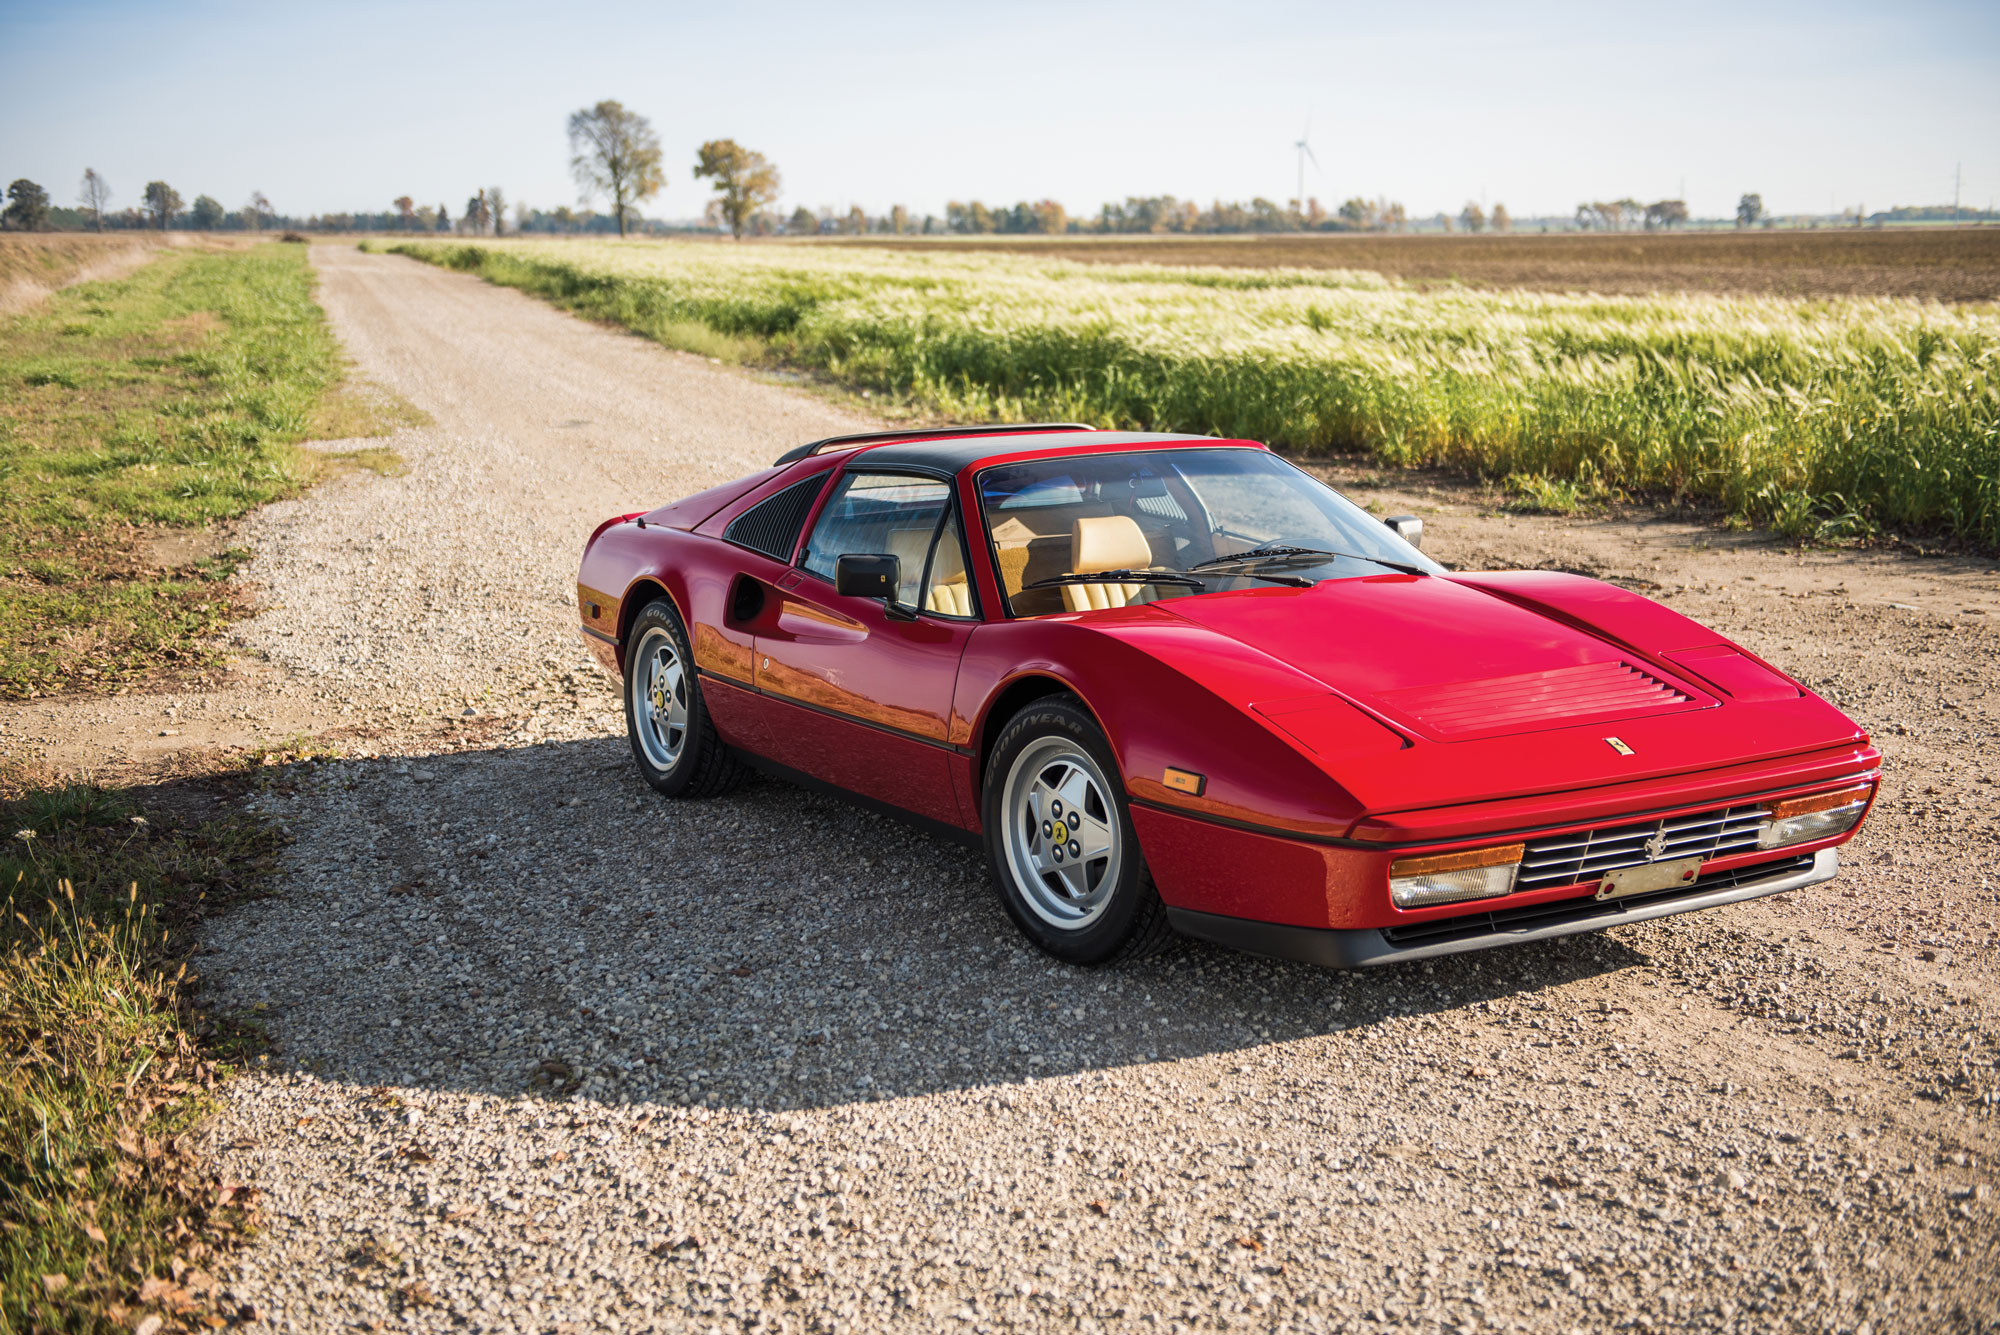 Scoop Up These 8 Cars Before They Take Off Hagerty Media